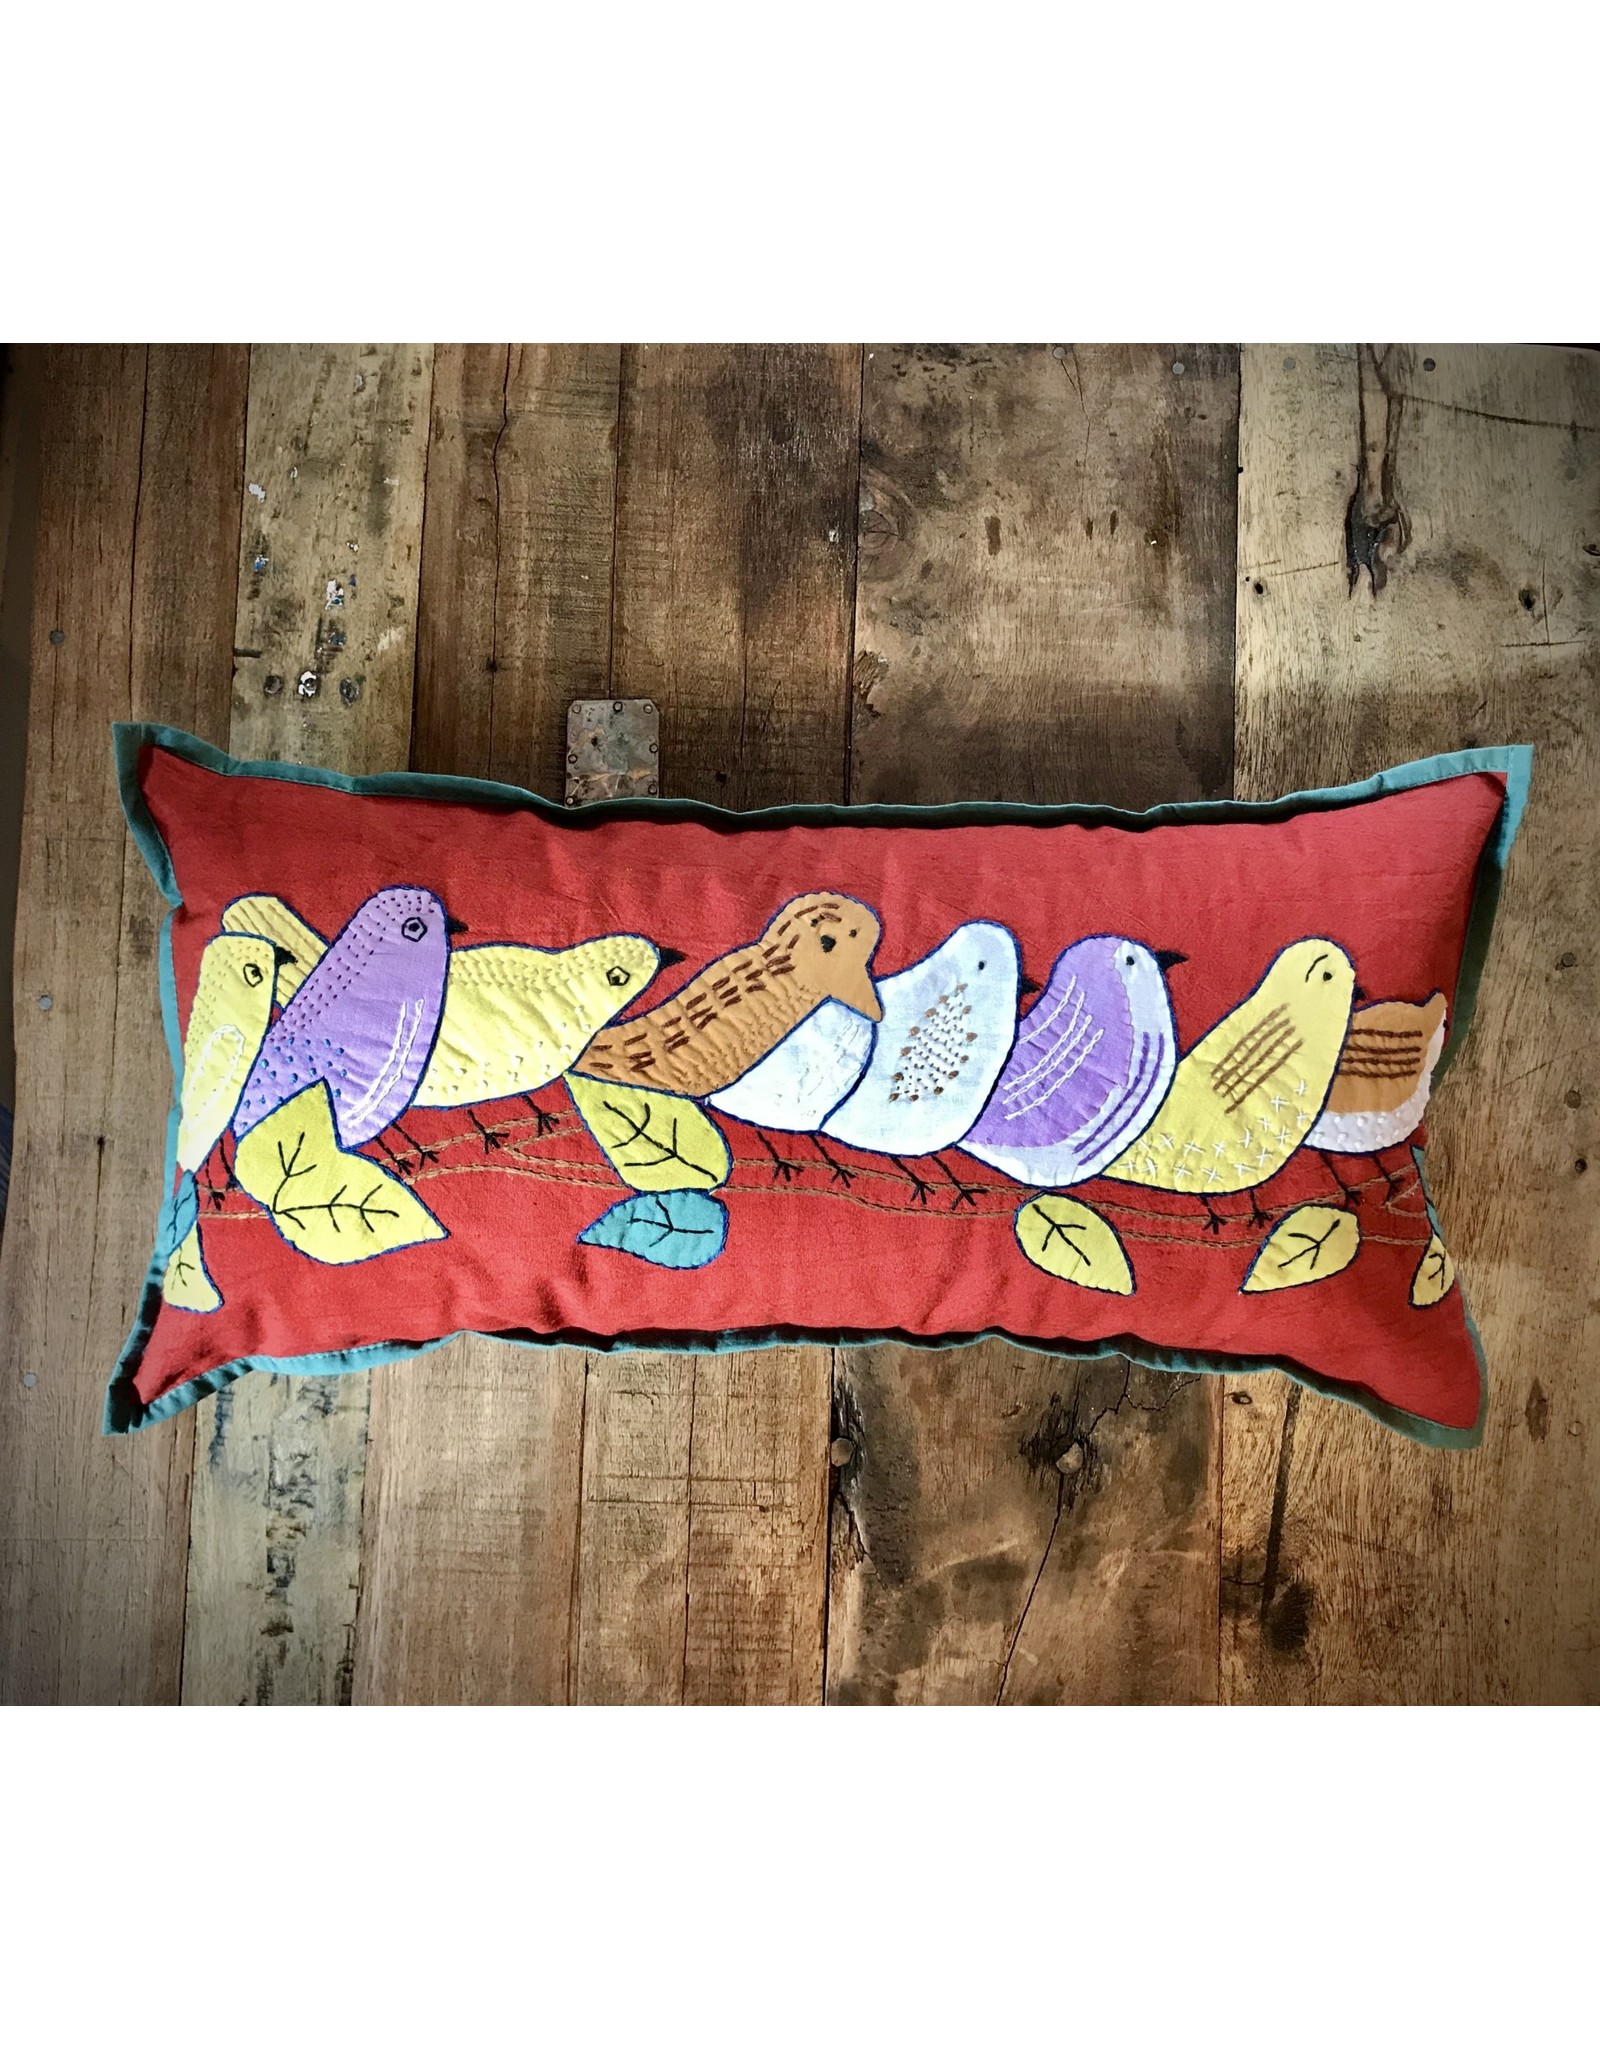 9 x 19 Inch Pillow Birds on a Limb, India